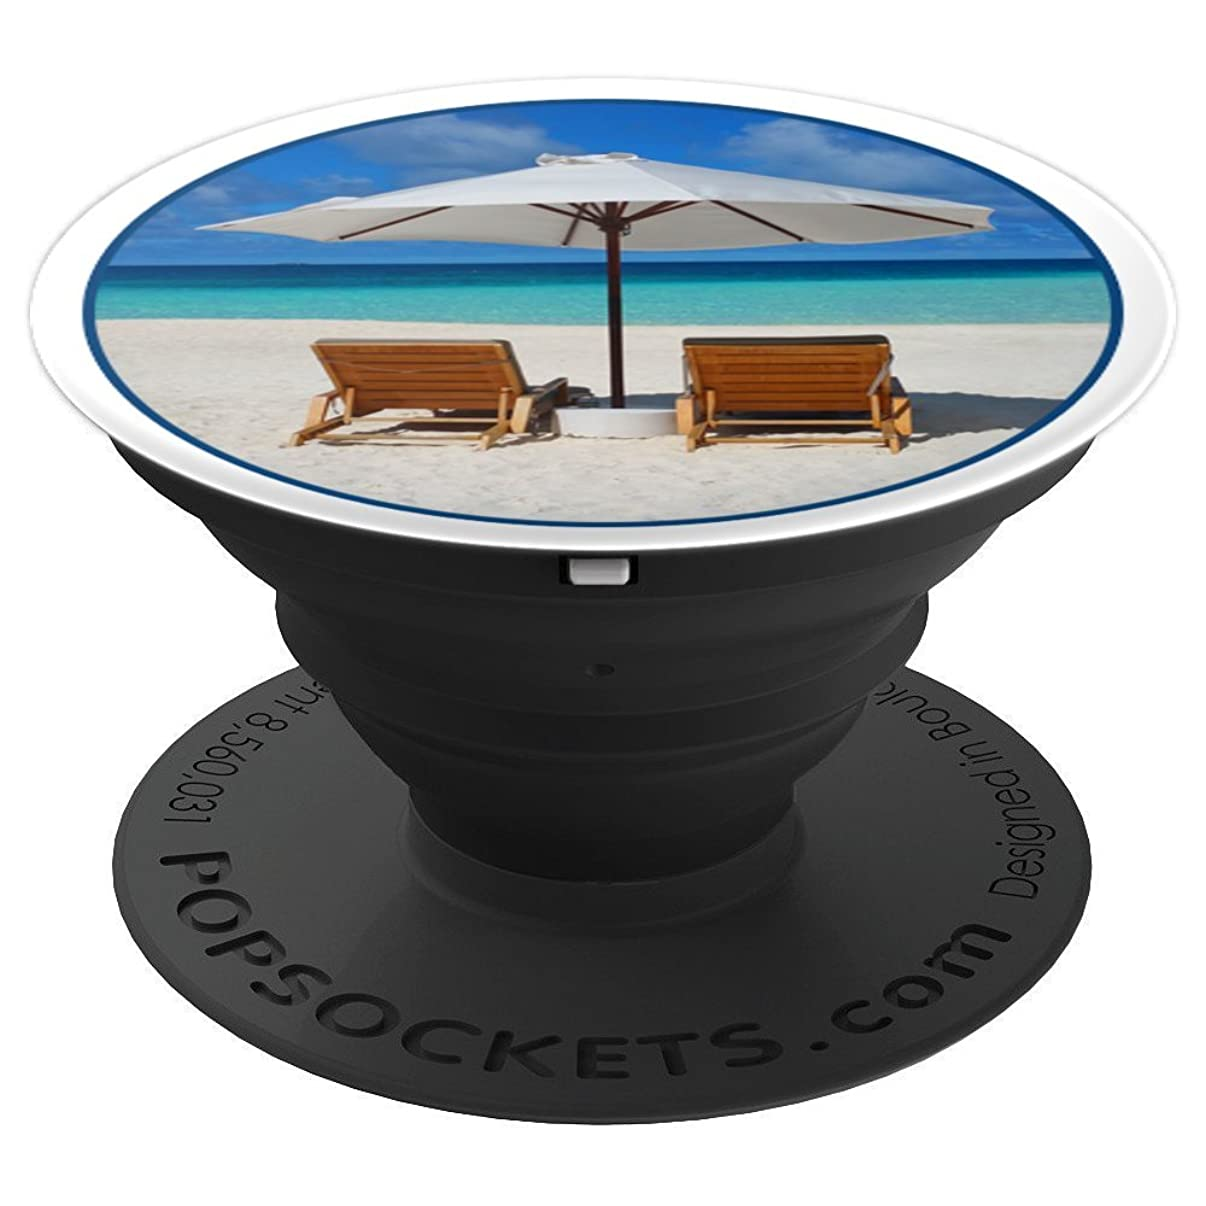 Beach Chair And Umbrella Vacation - PopSockets Grip and Stand for Phones and Tablets